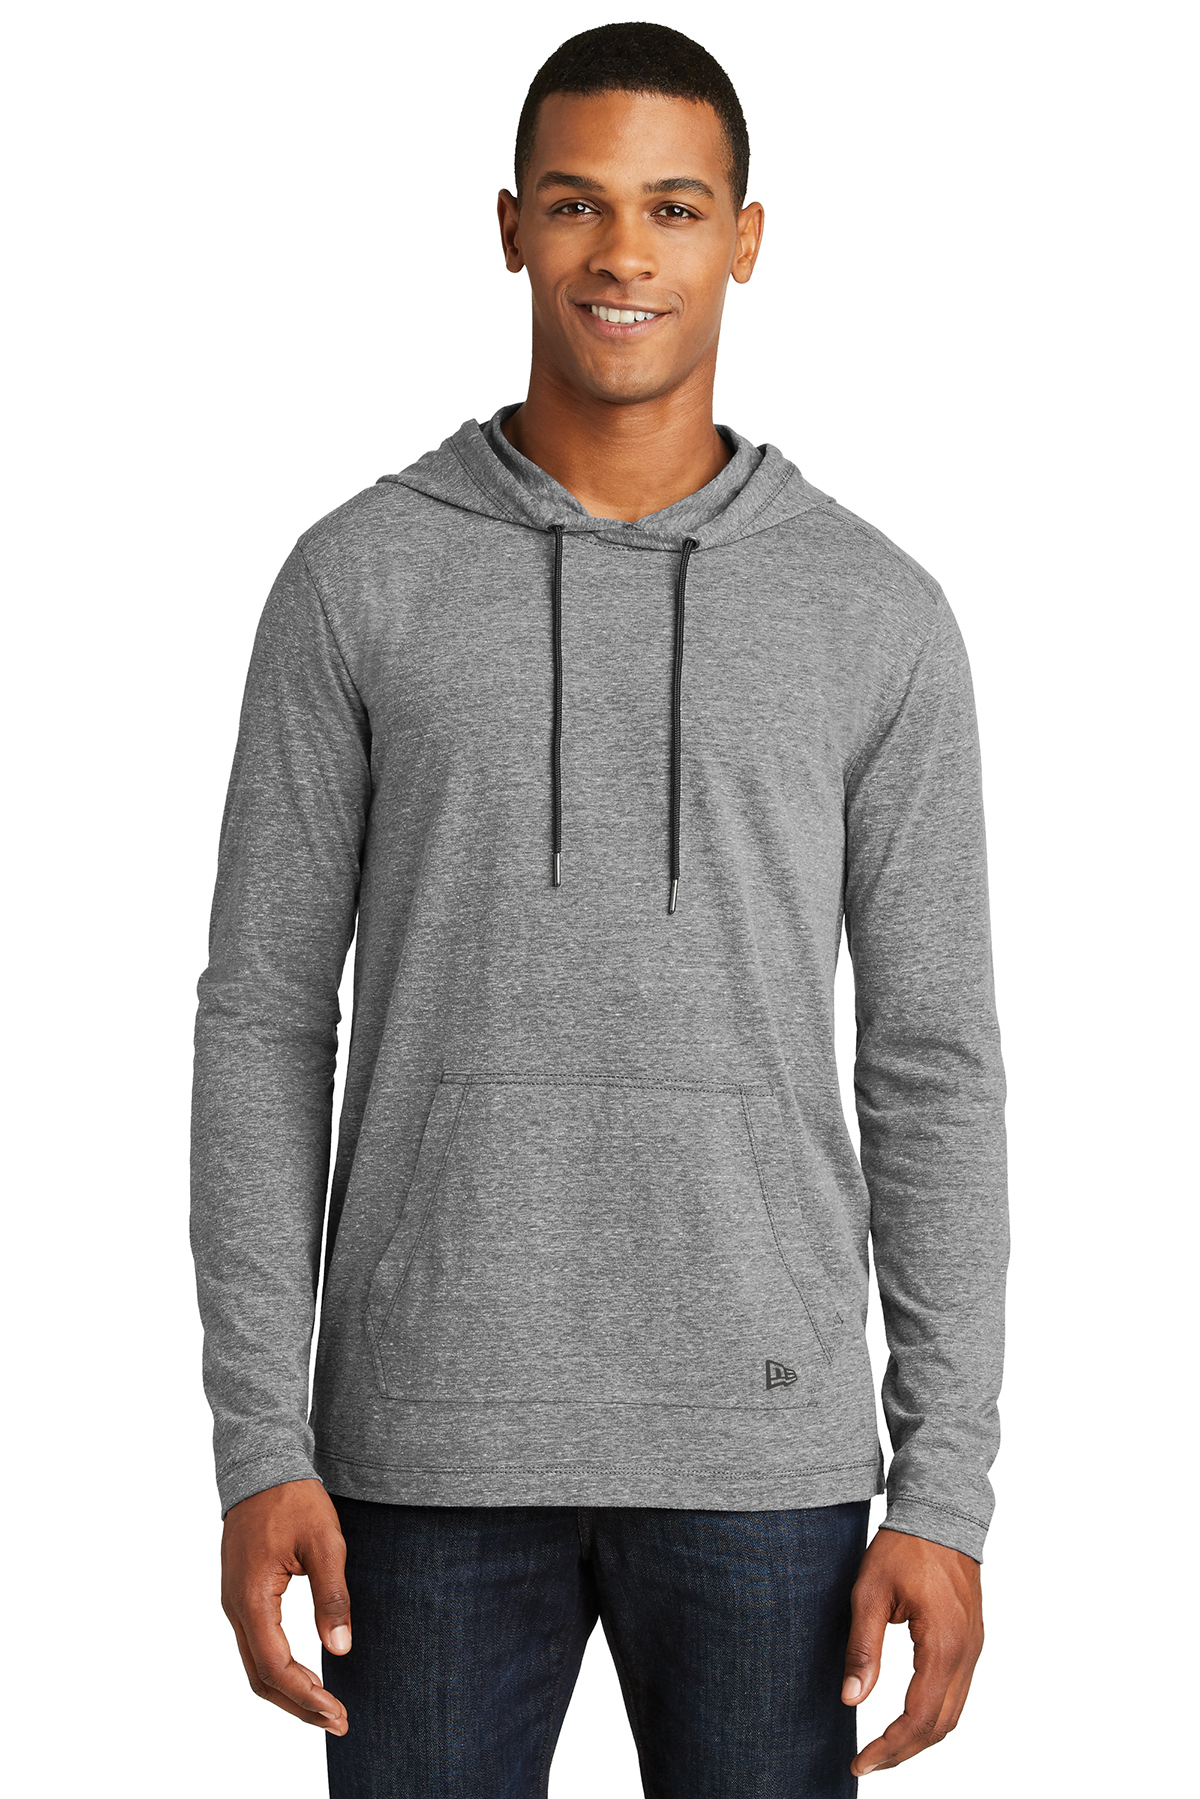 New Era NEA131 - Men's Tri-Blend Performance Pullover Hoodie Tee